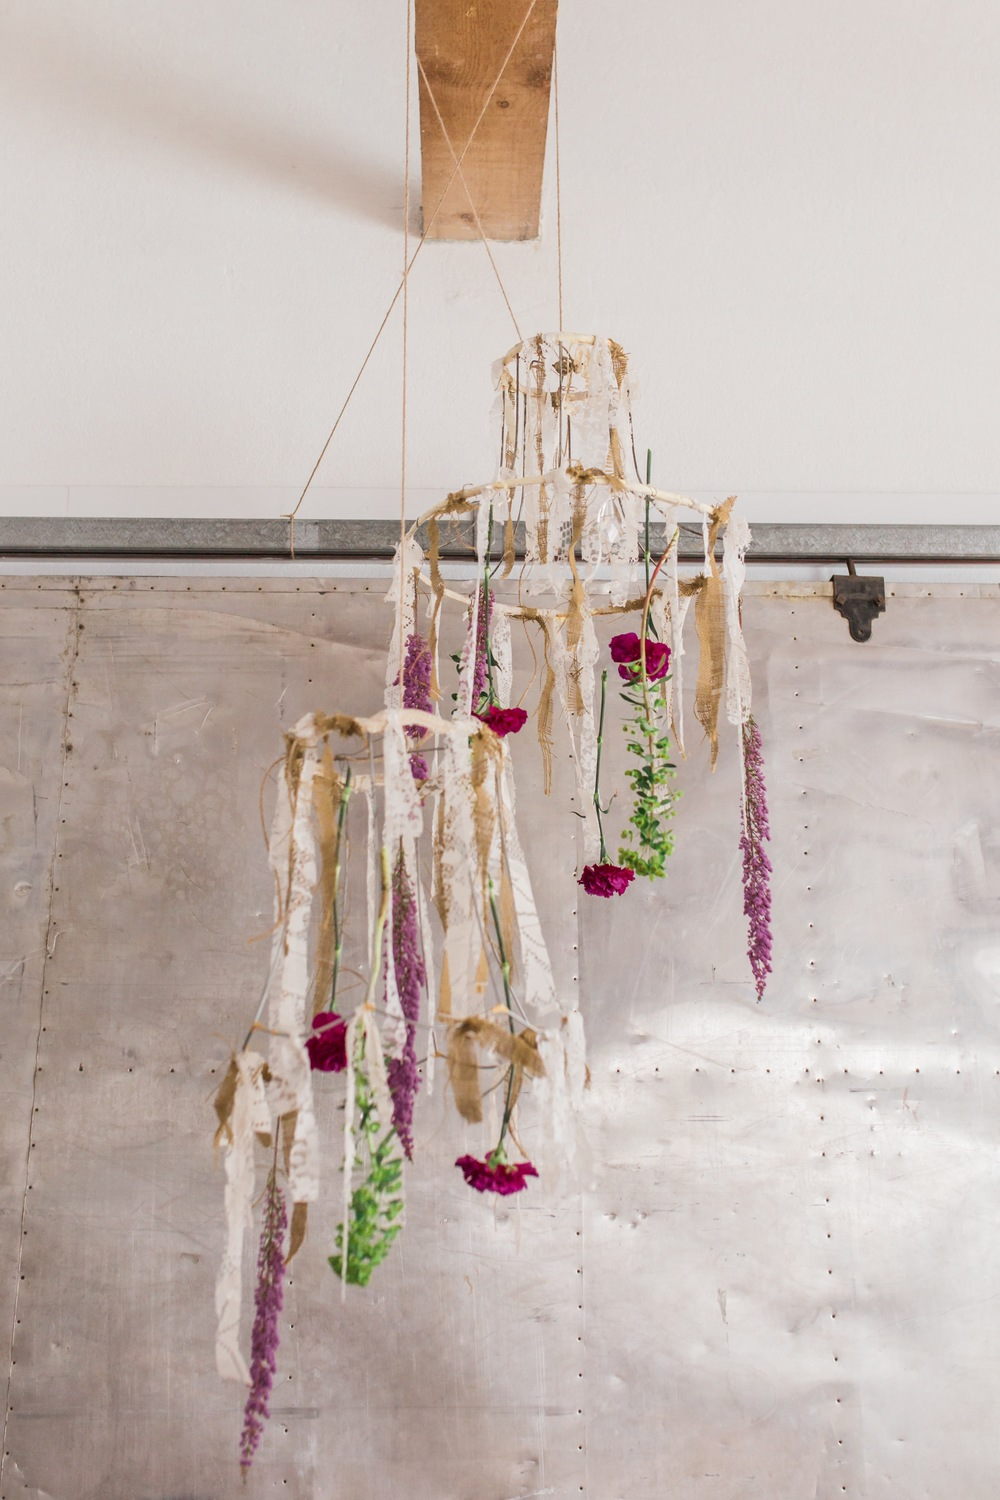 Peanut's Gallery made the chandeliers and then I got inspired and hung flowers from them. :)  Because the more flowers, the better.